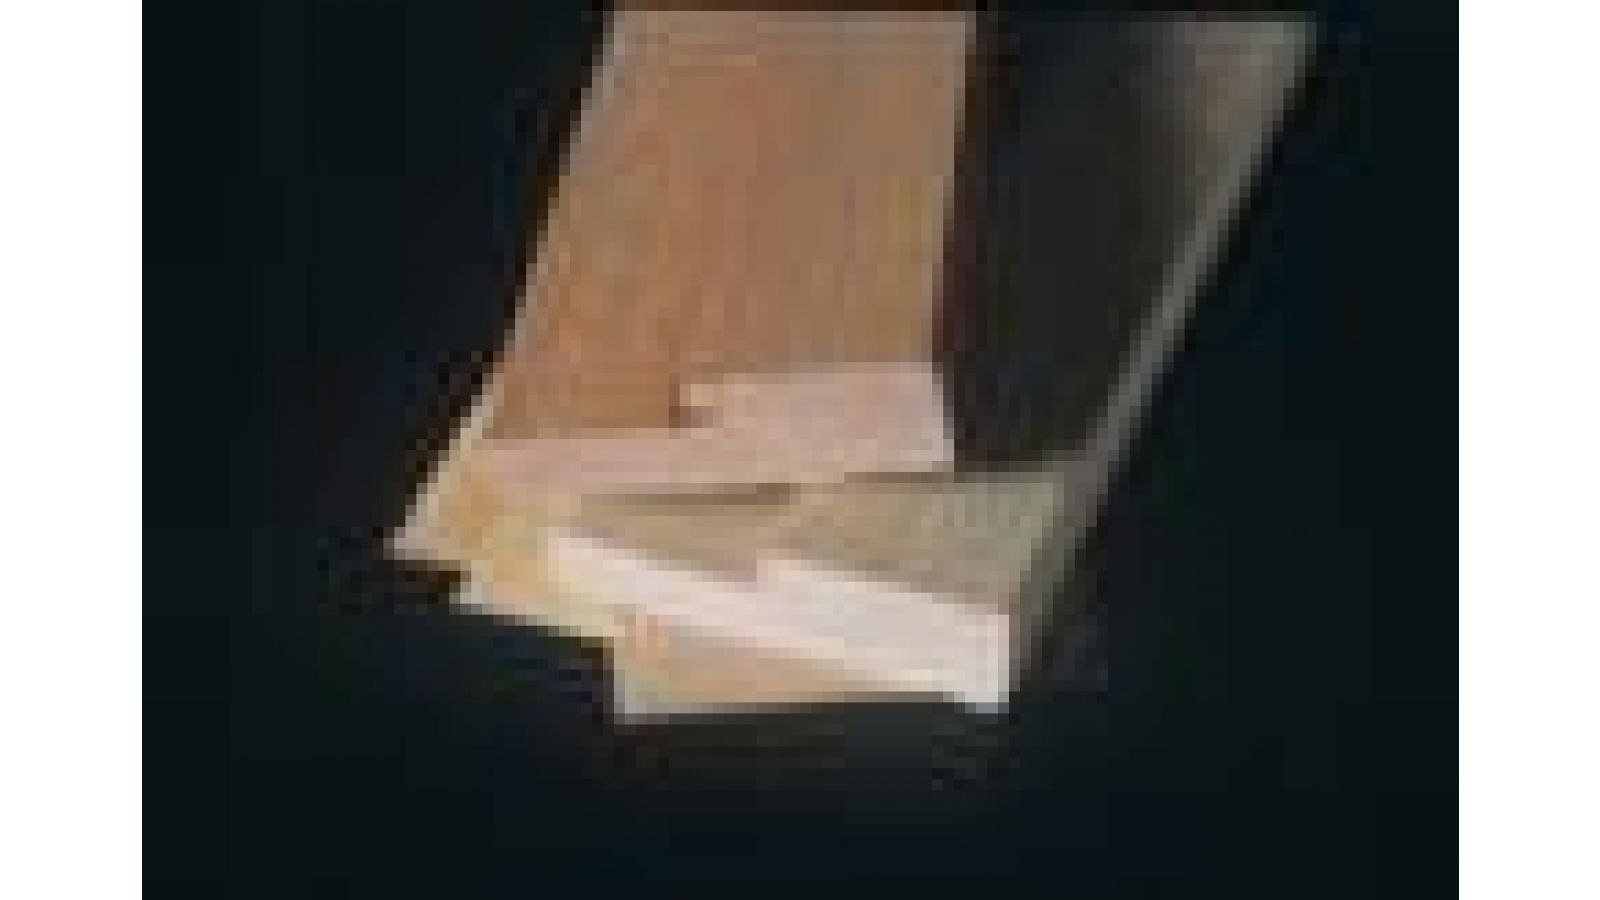 Profile Wrapped Wood Look-Alike Products